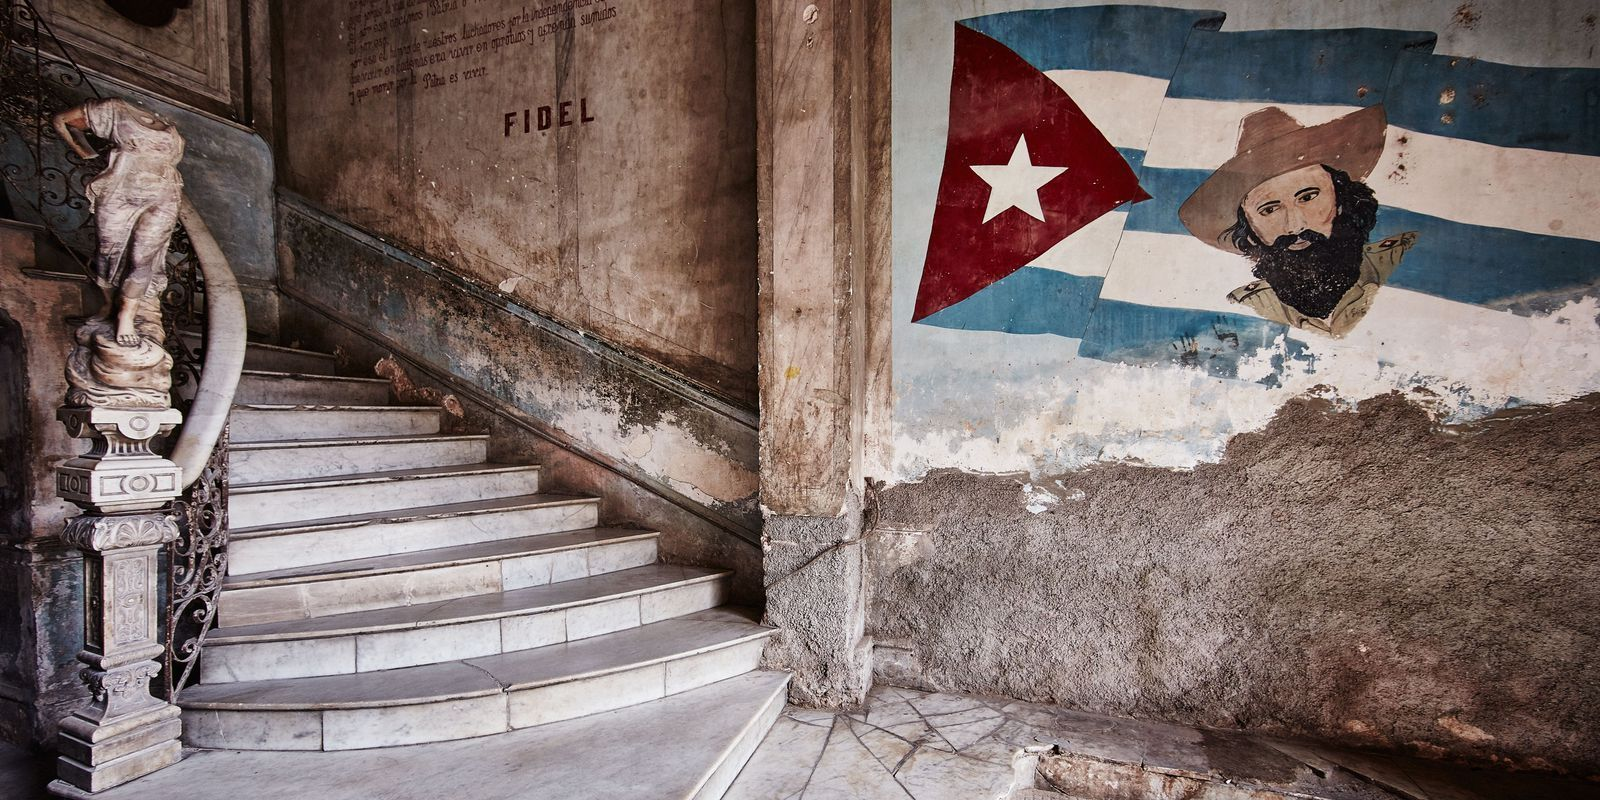 30 Pictures That Will Make You Want to Visit Cuba Immediately #visitcuba 30 Pictures That Will Make You Want to Visit Cuba Immediately- TownandCountrymag.com #visitcuba 30 Pictures That Will Make You Want to Visit Cuba Immediately #visitcuba 30 Pictures That Will Make You Want to Visit Cuba Immediately- TownandCountrymag.com #visitcuba